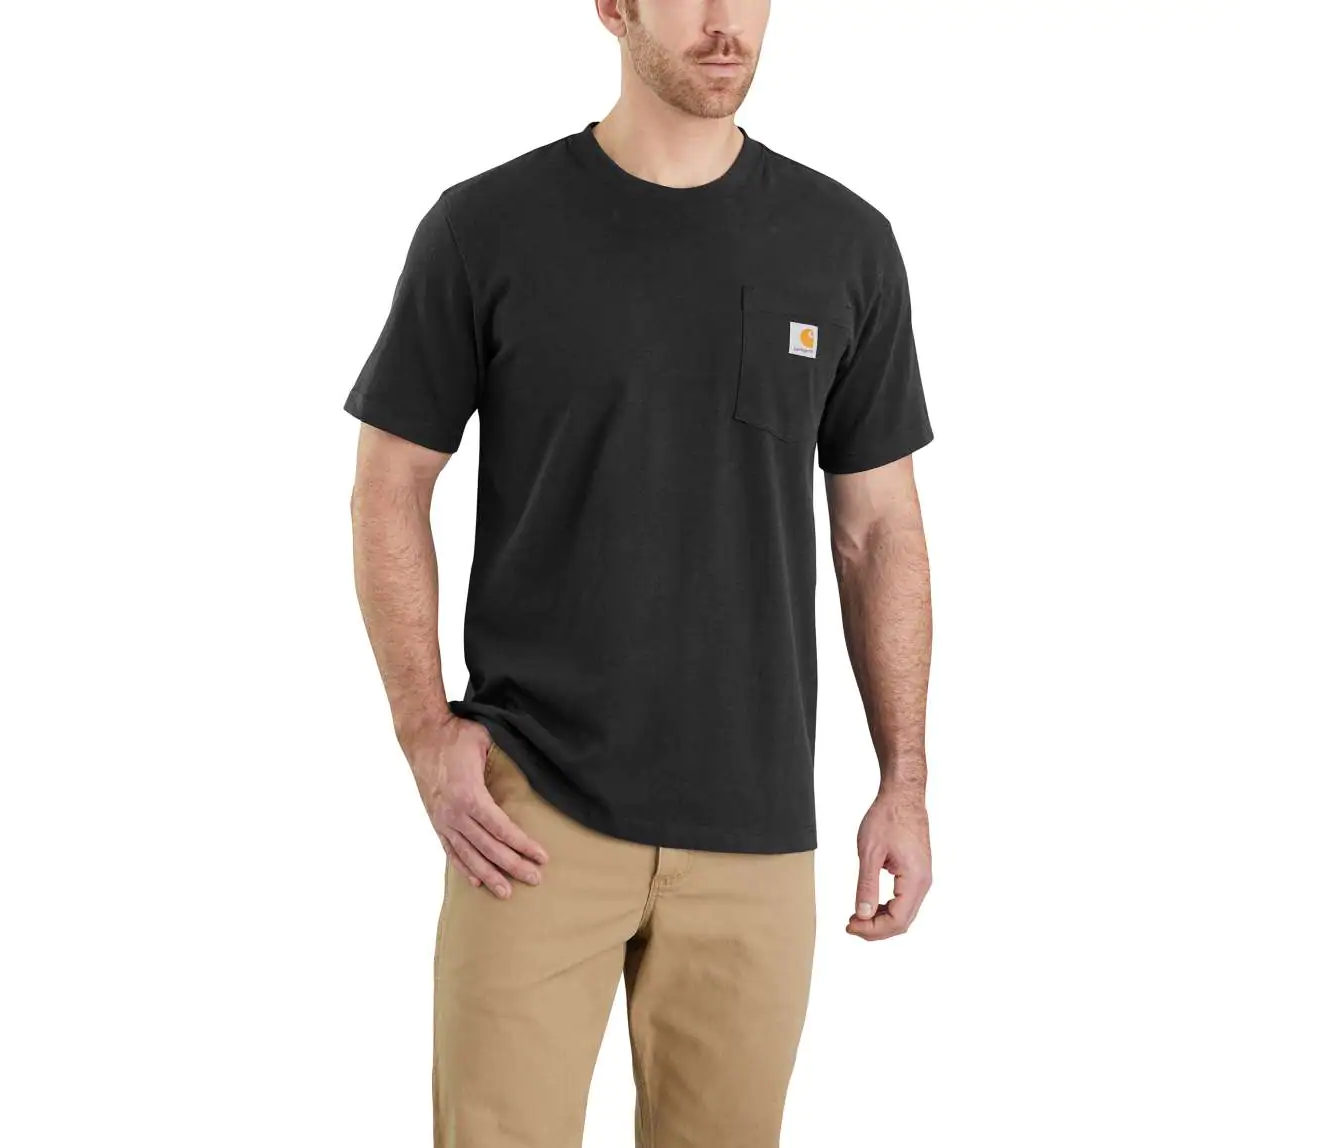 Workwear Pocket Tee - Black